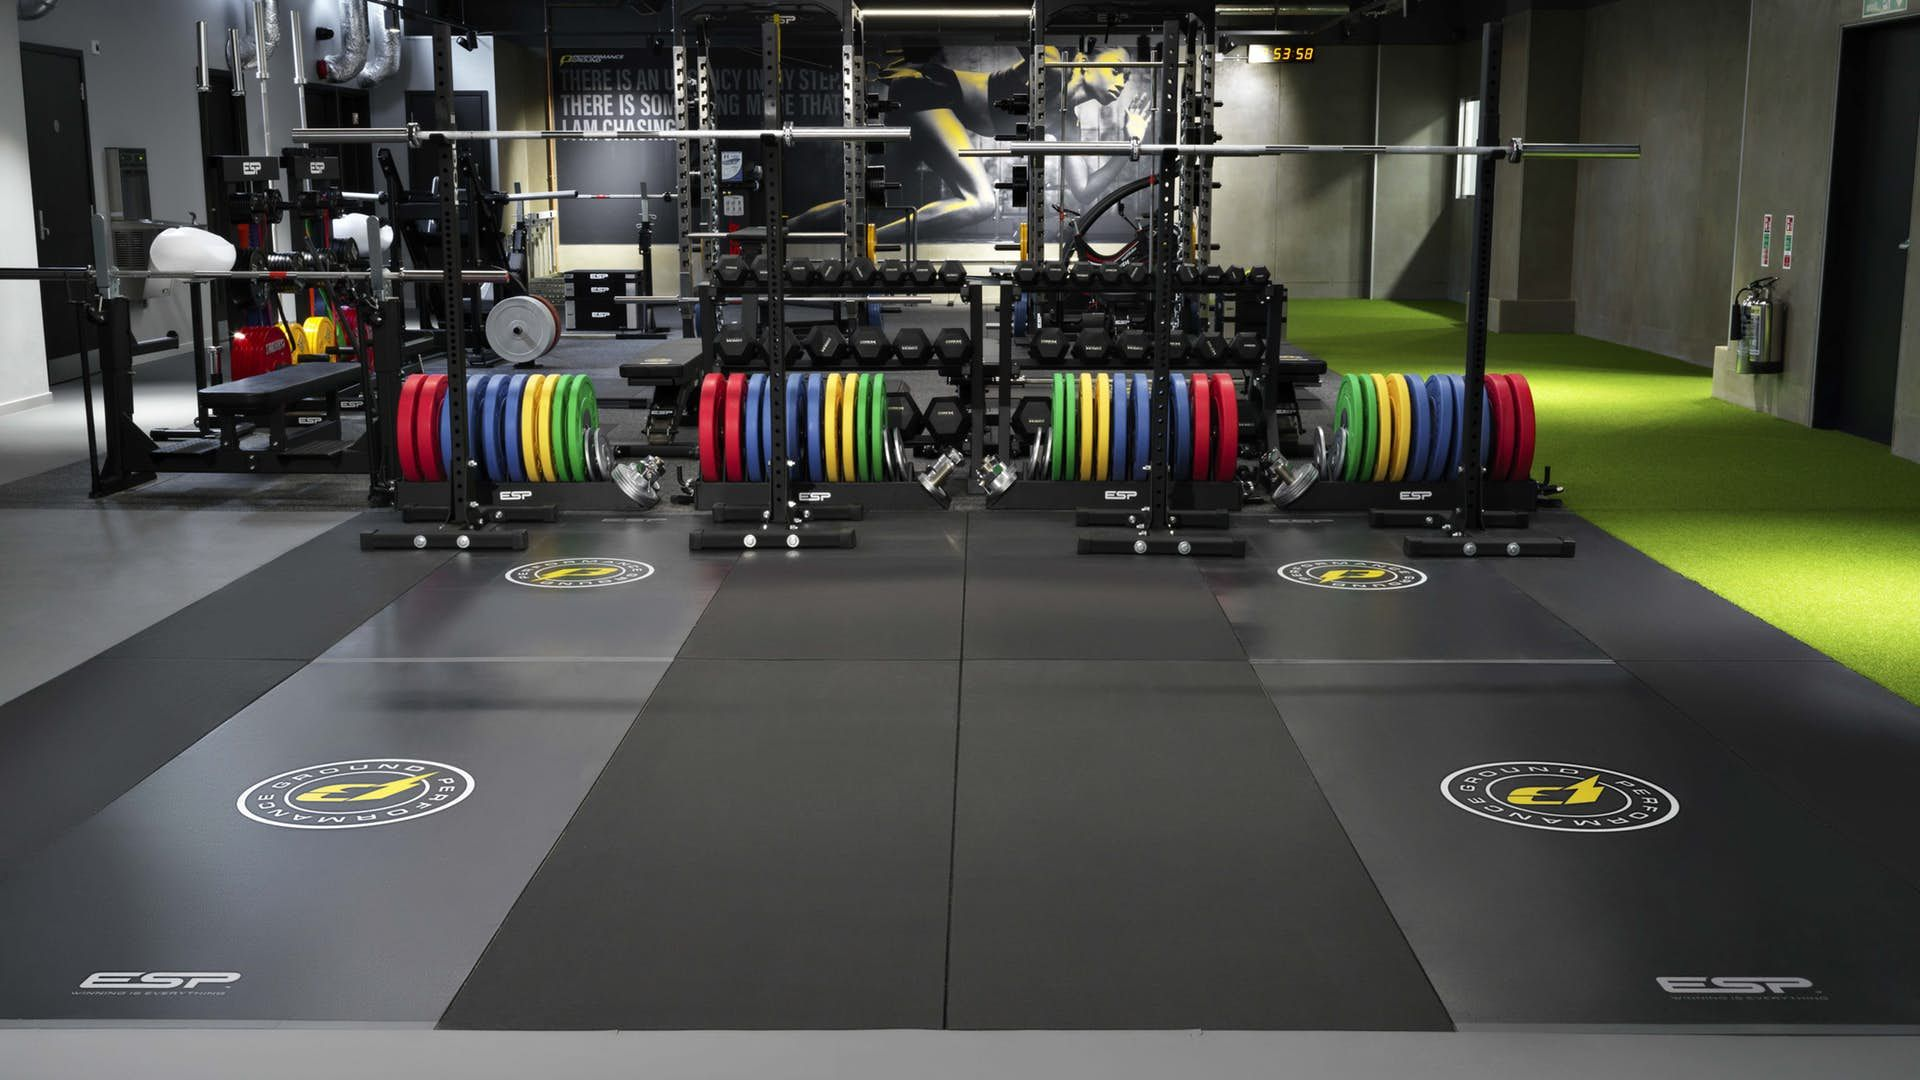 Best luxury gym changing rooms id spa pool and gym luxury